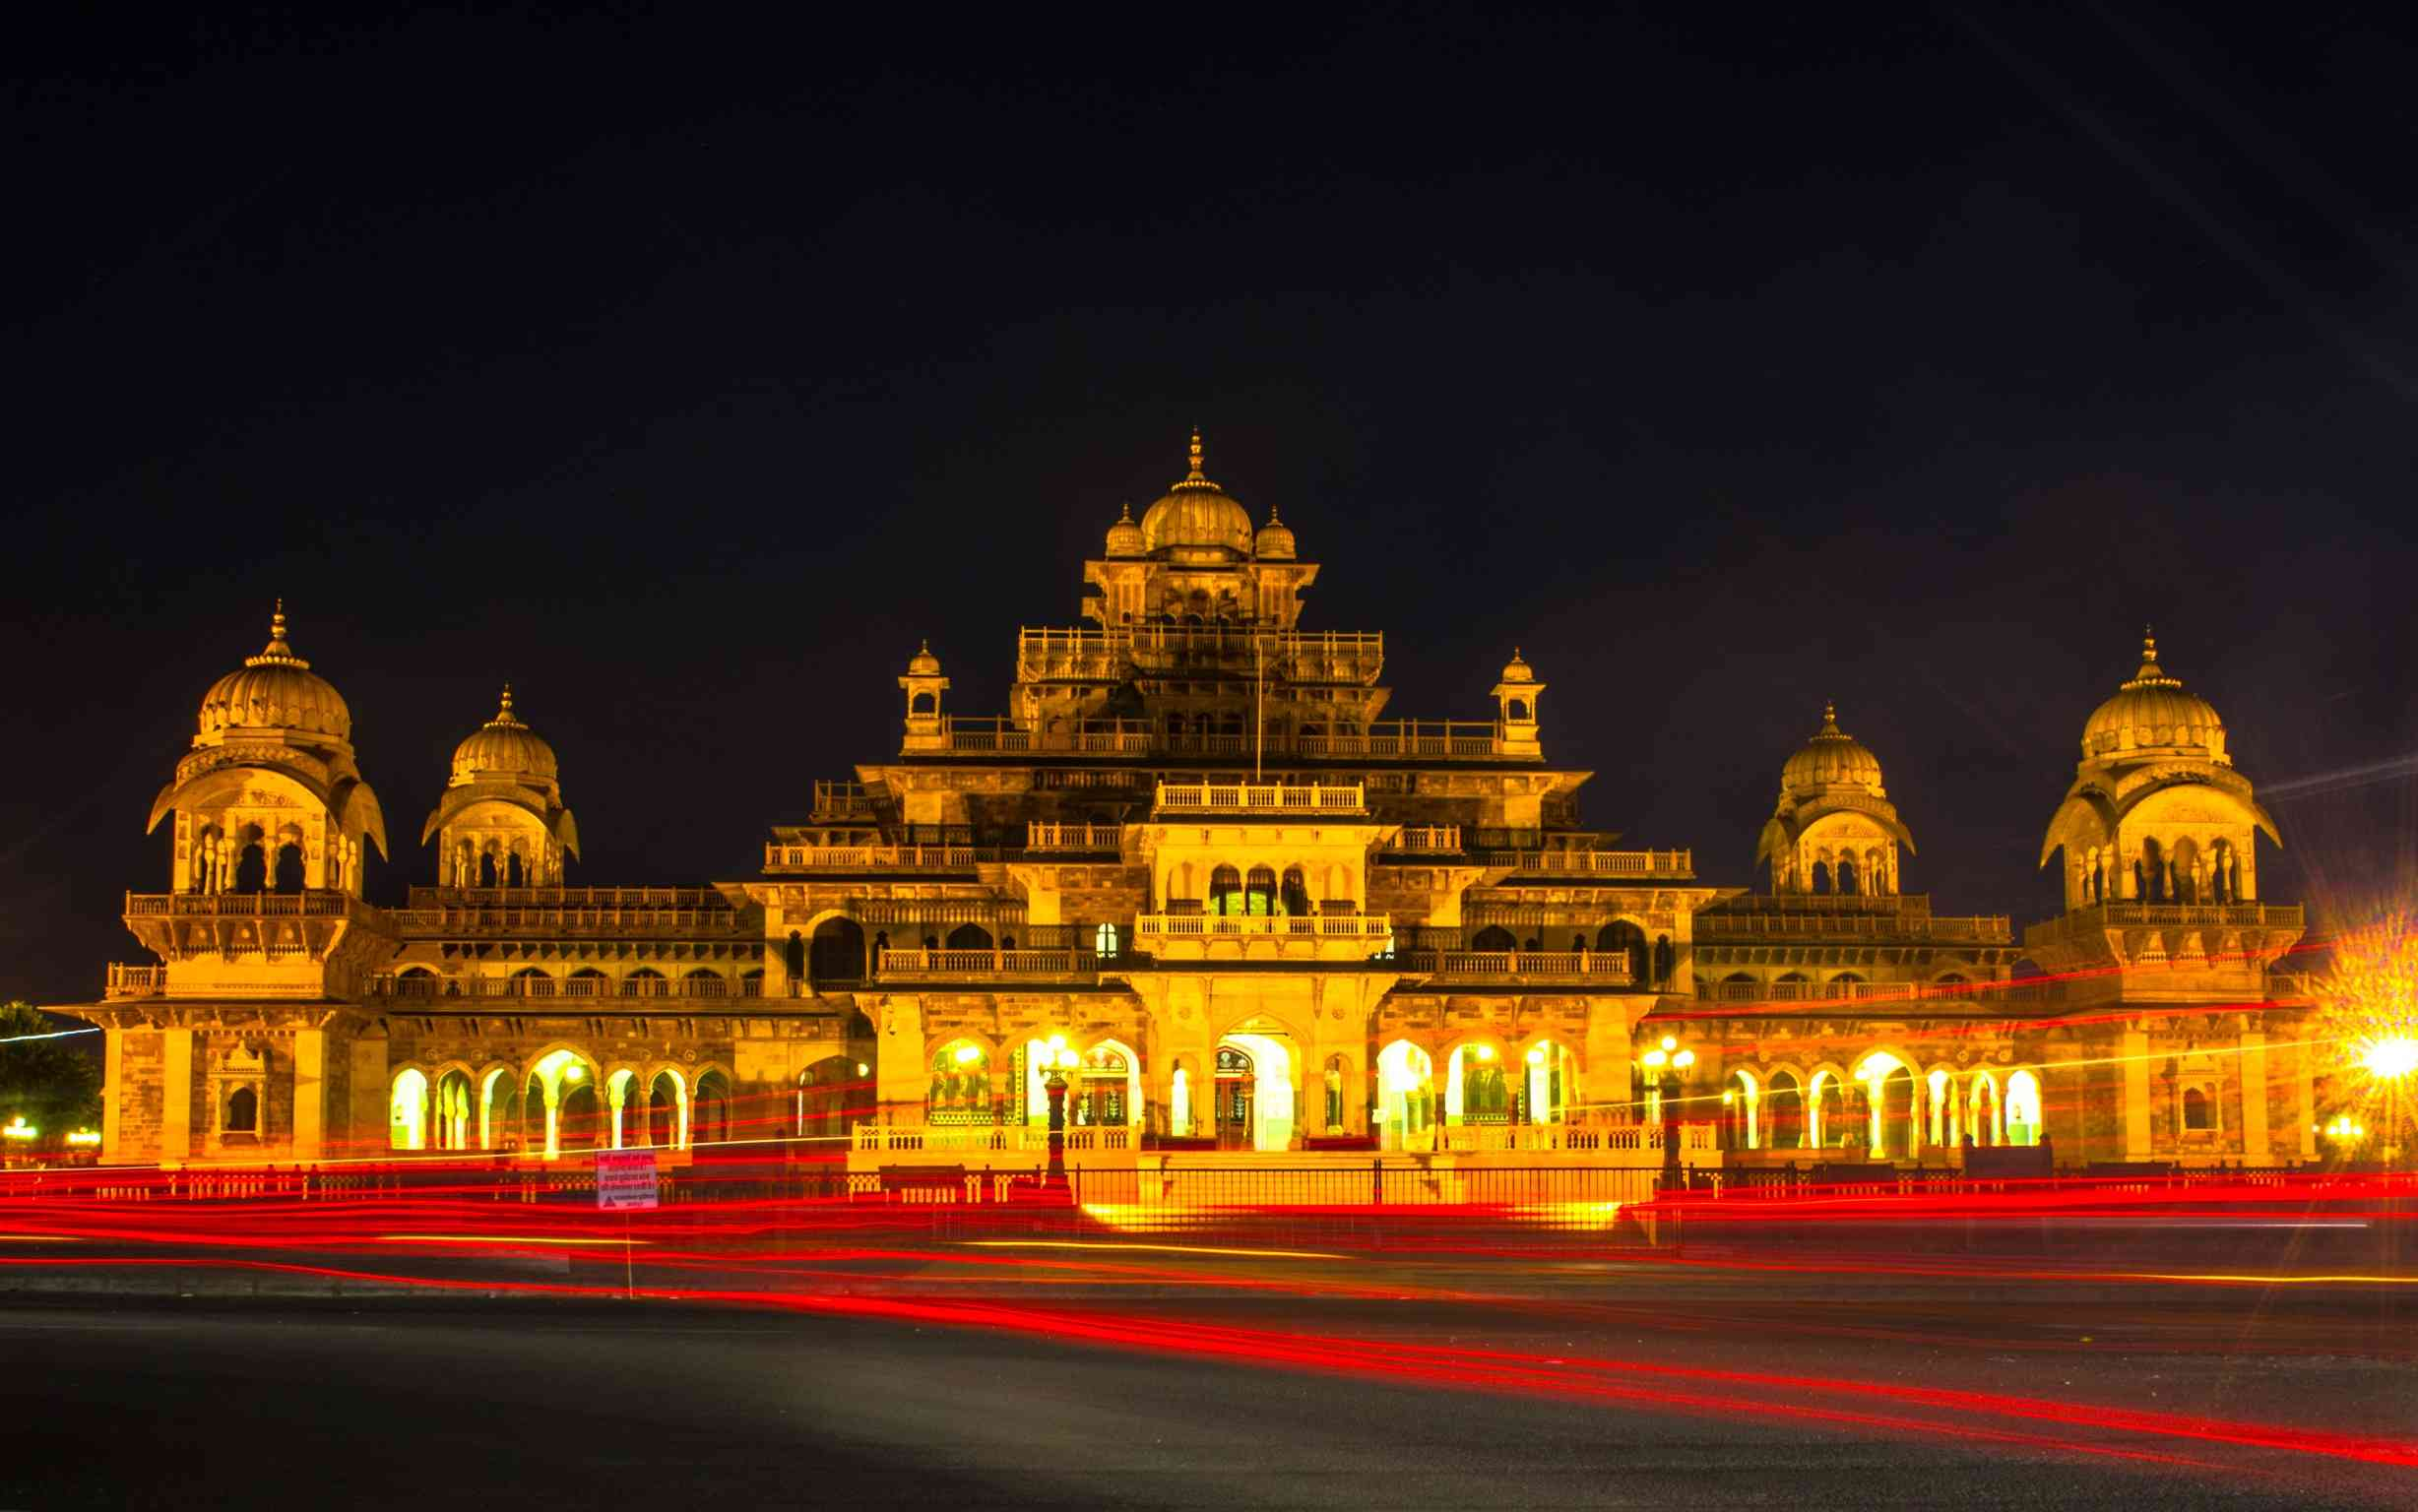 November 18 is marked as the Jaipur Foundation Day which is celebrated with great zeal every year.